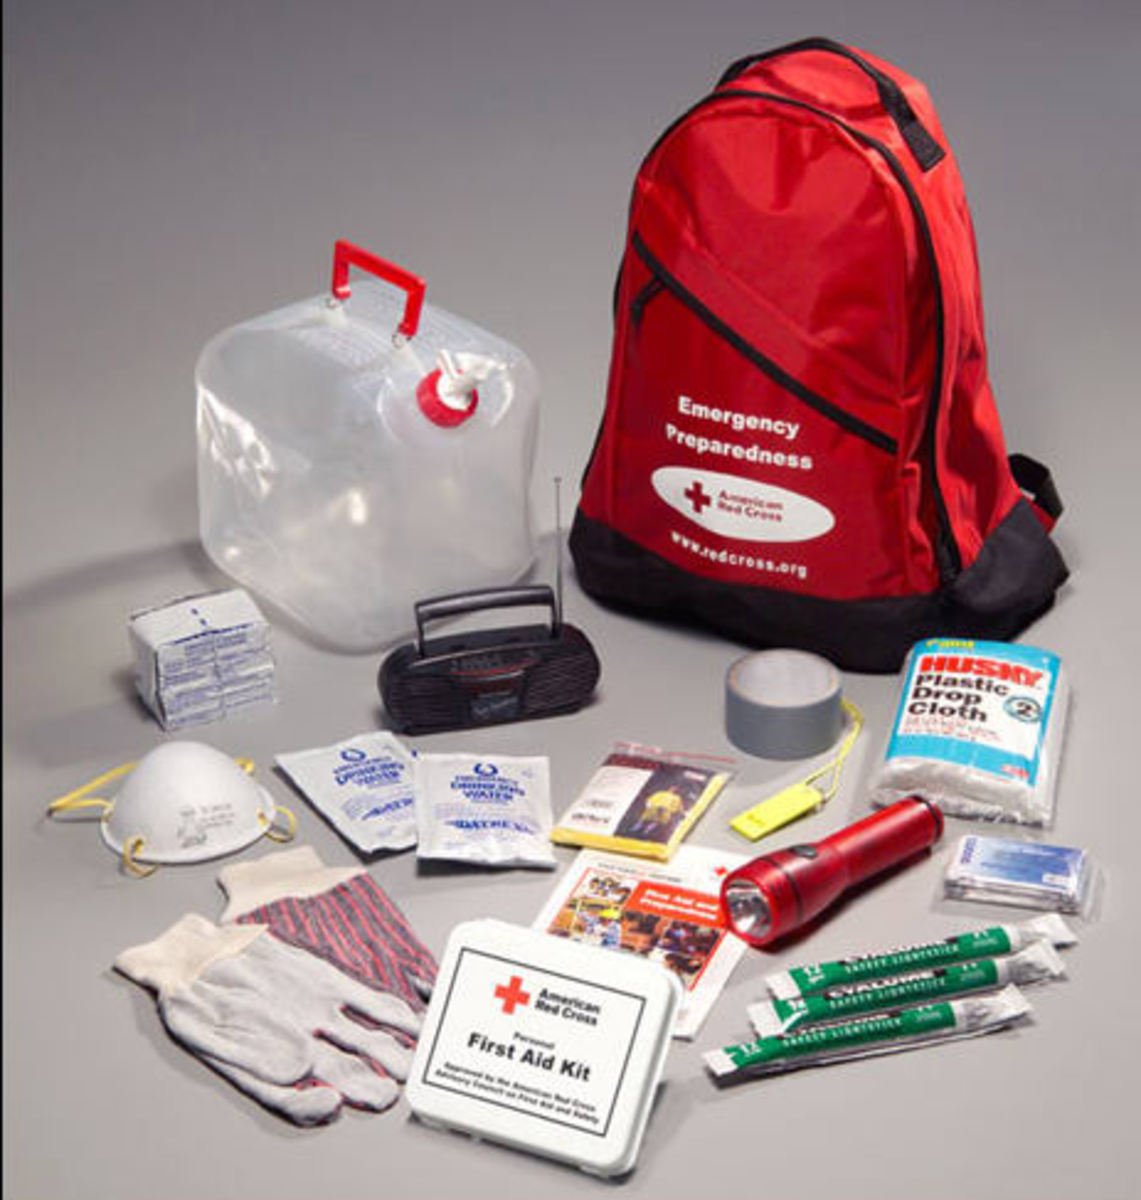 Contents of the Red Cross Survival Kit